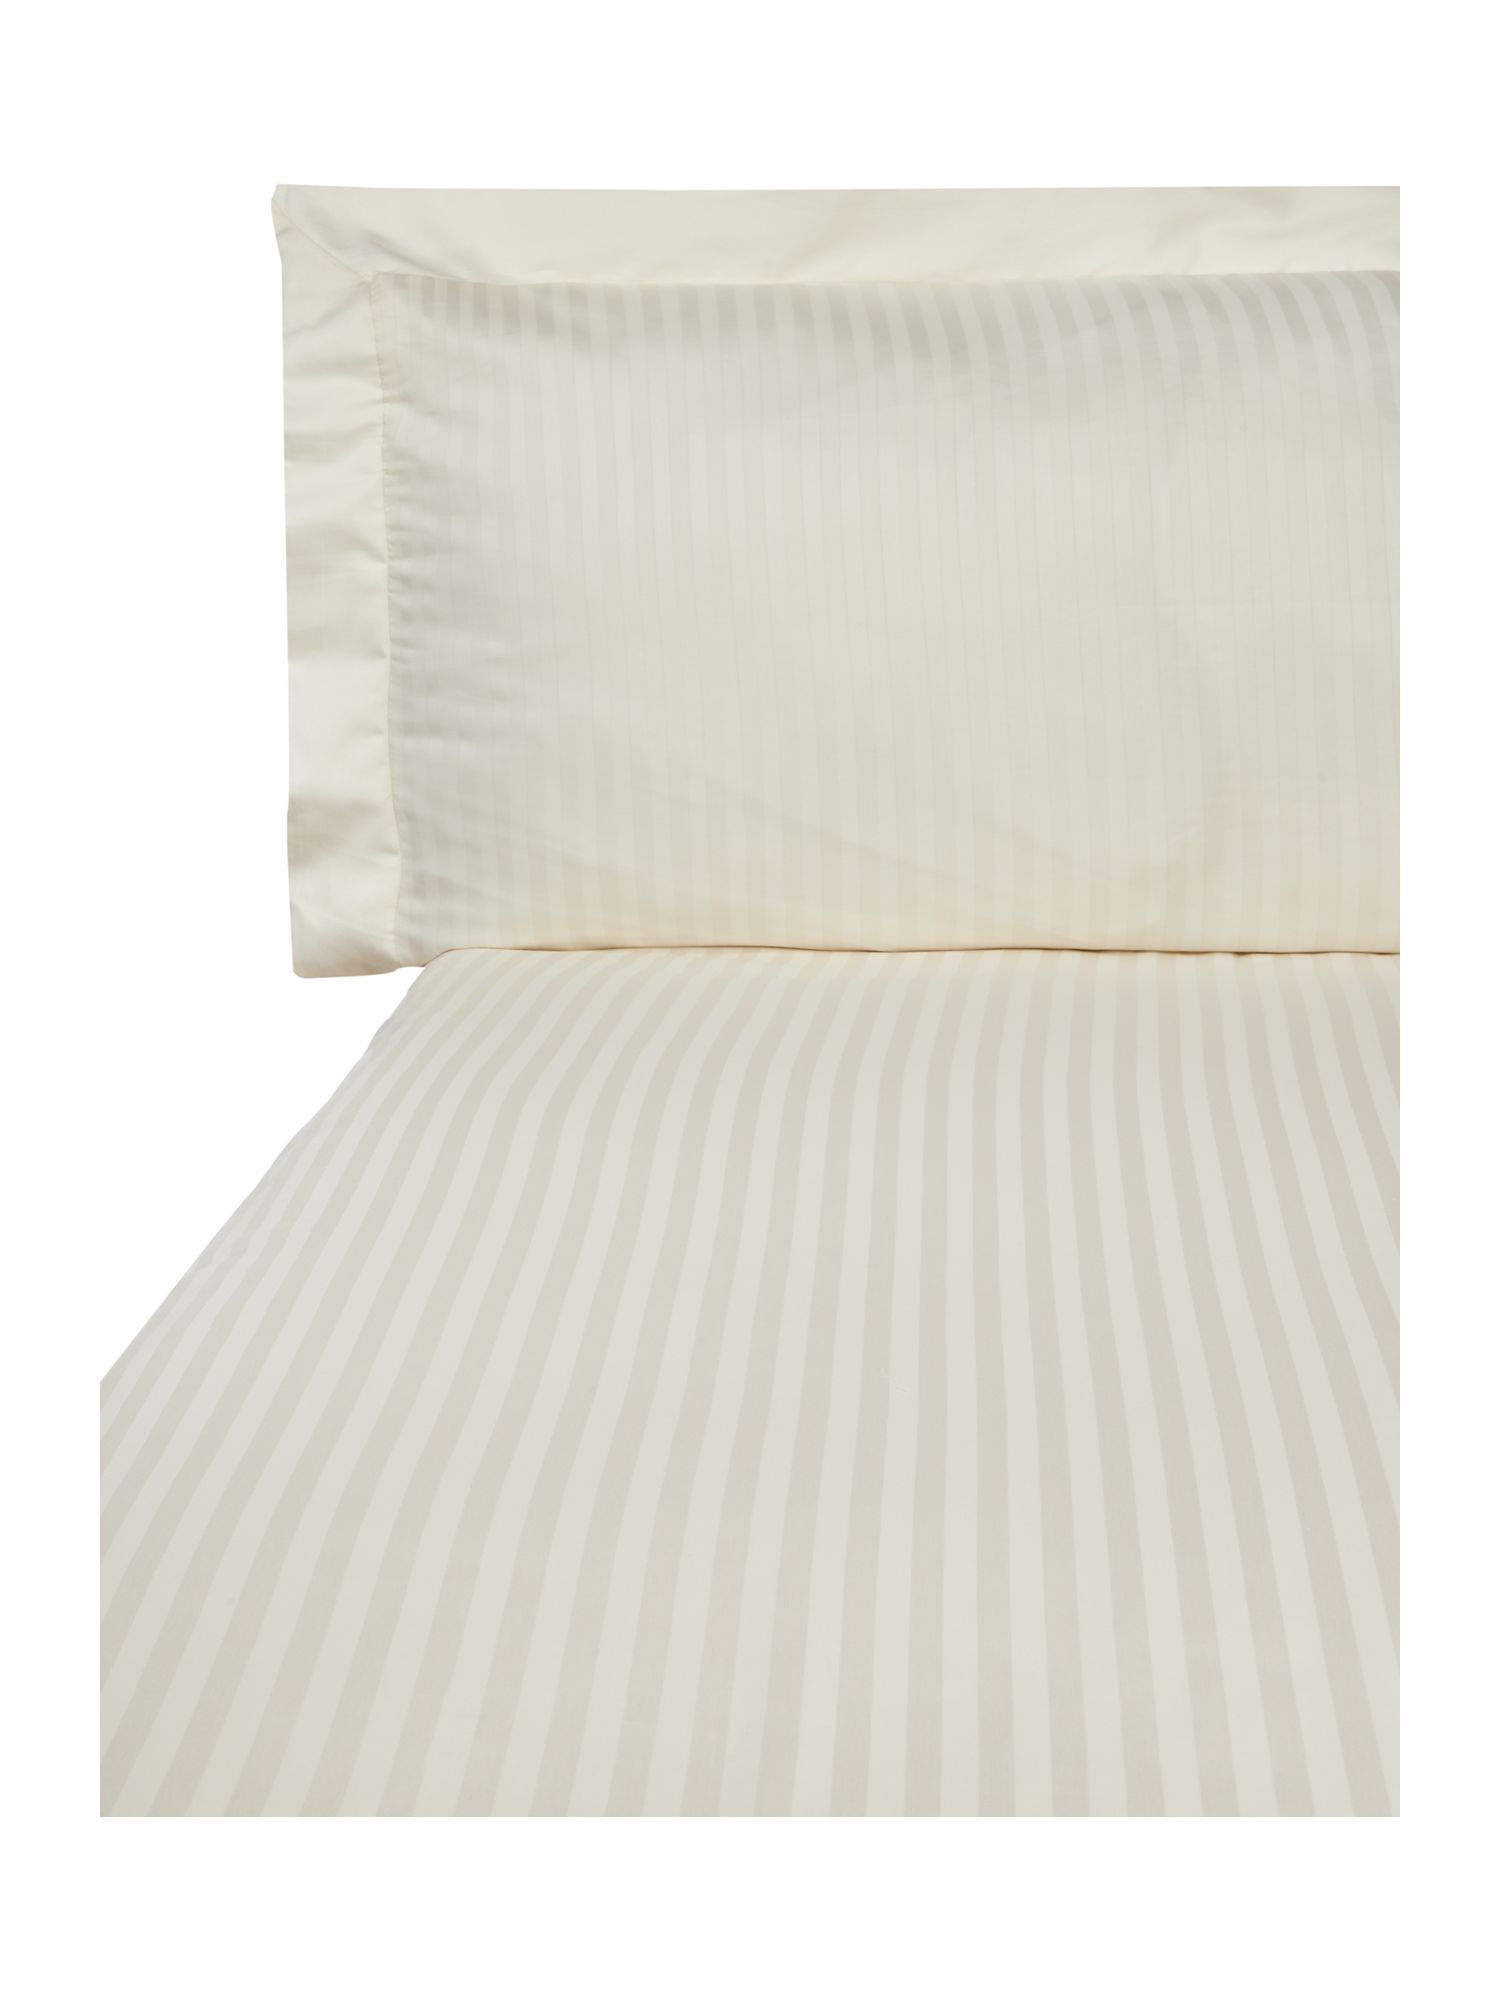 300TC Satin stripe bed linen in cream